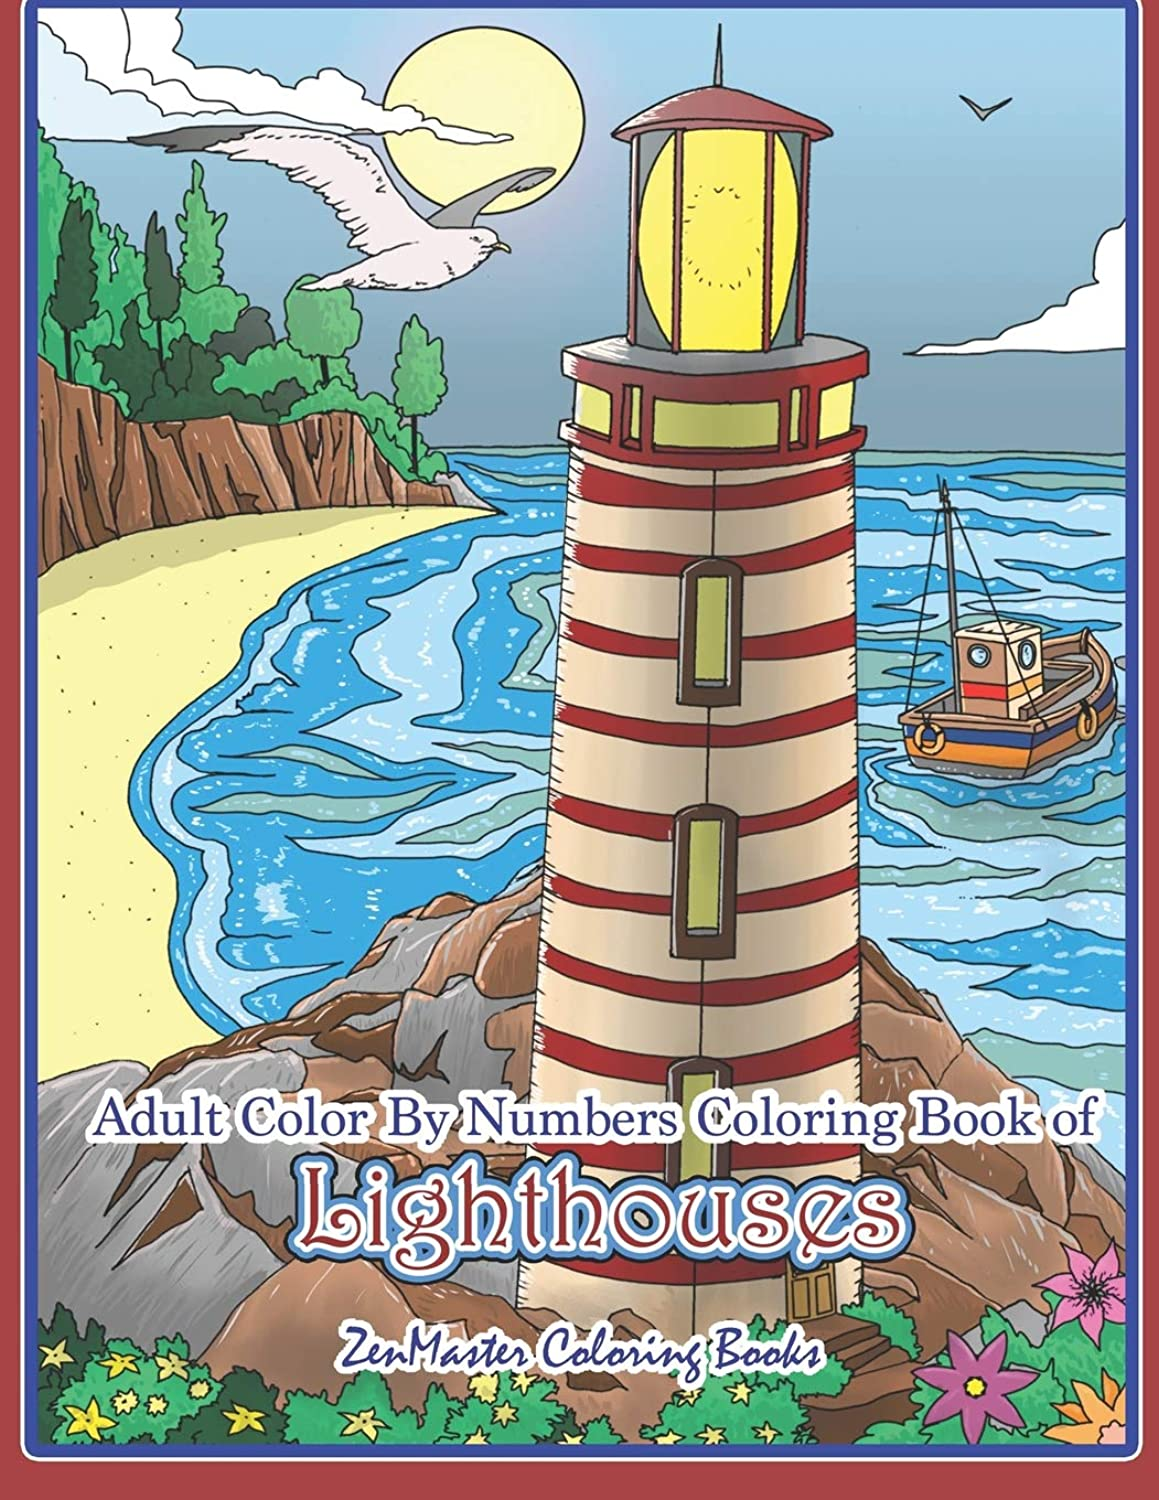 Adult Color By Numbers Coloring Book of Lighthouses: Lighthouse Color By Number Book for Adults With Lighthouses from Around the World, Scenic Views, Beach Scenes and More for Stress Relief and Relaxation (Adult Color By Number Coloring Books)